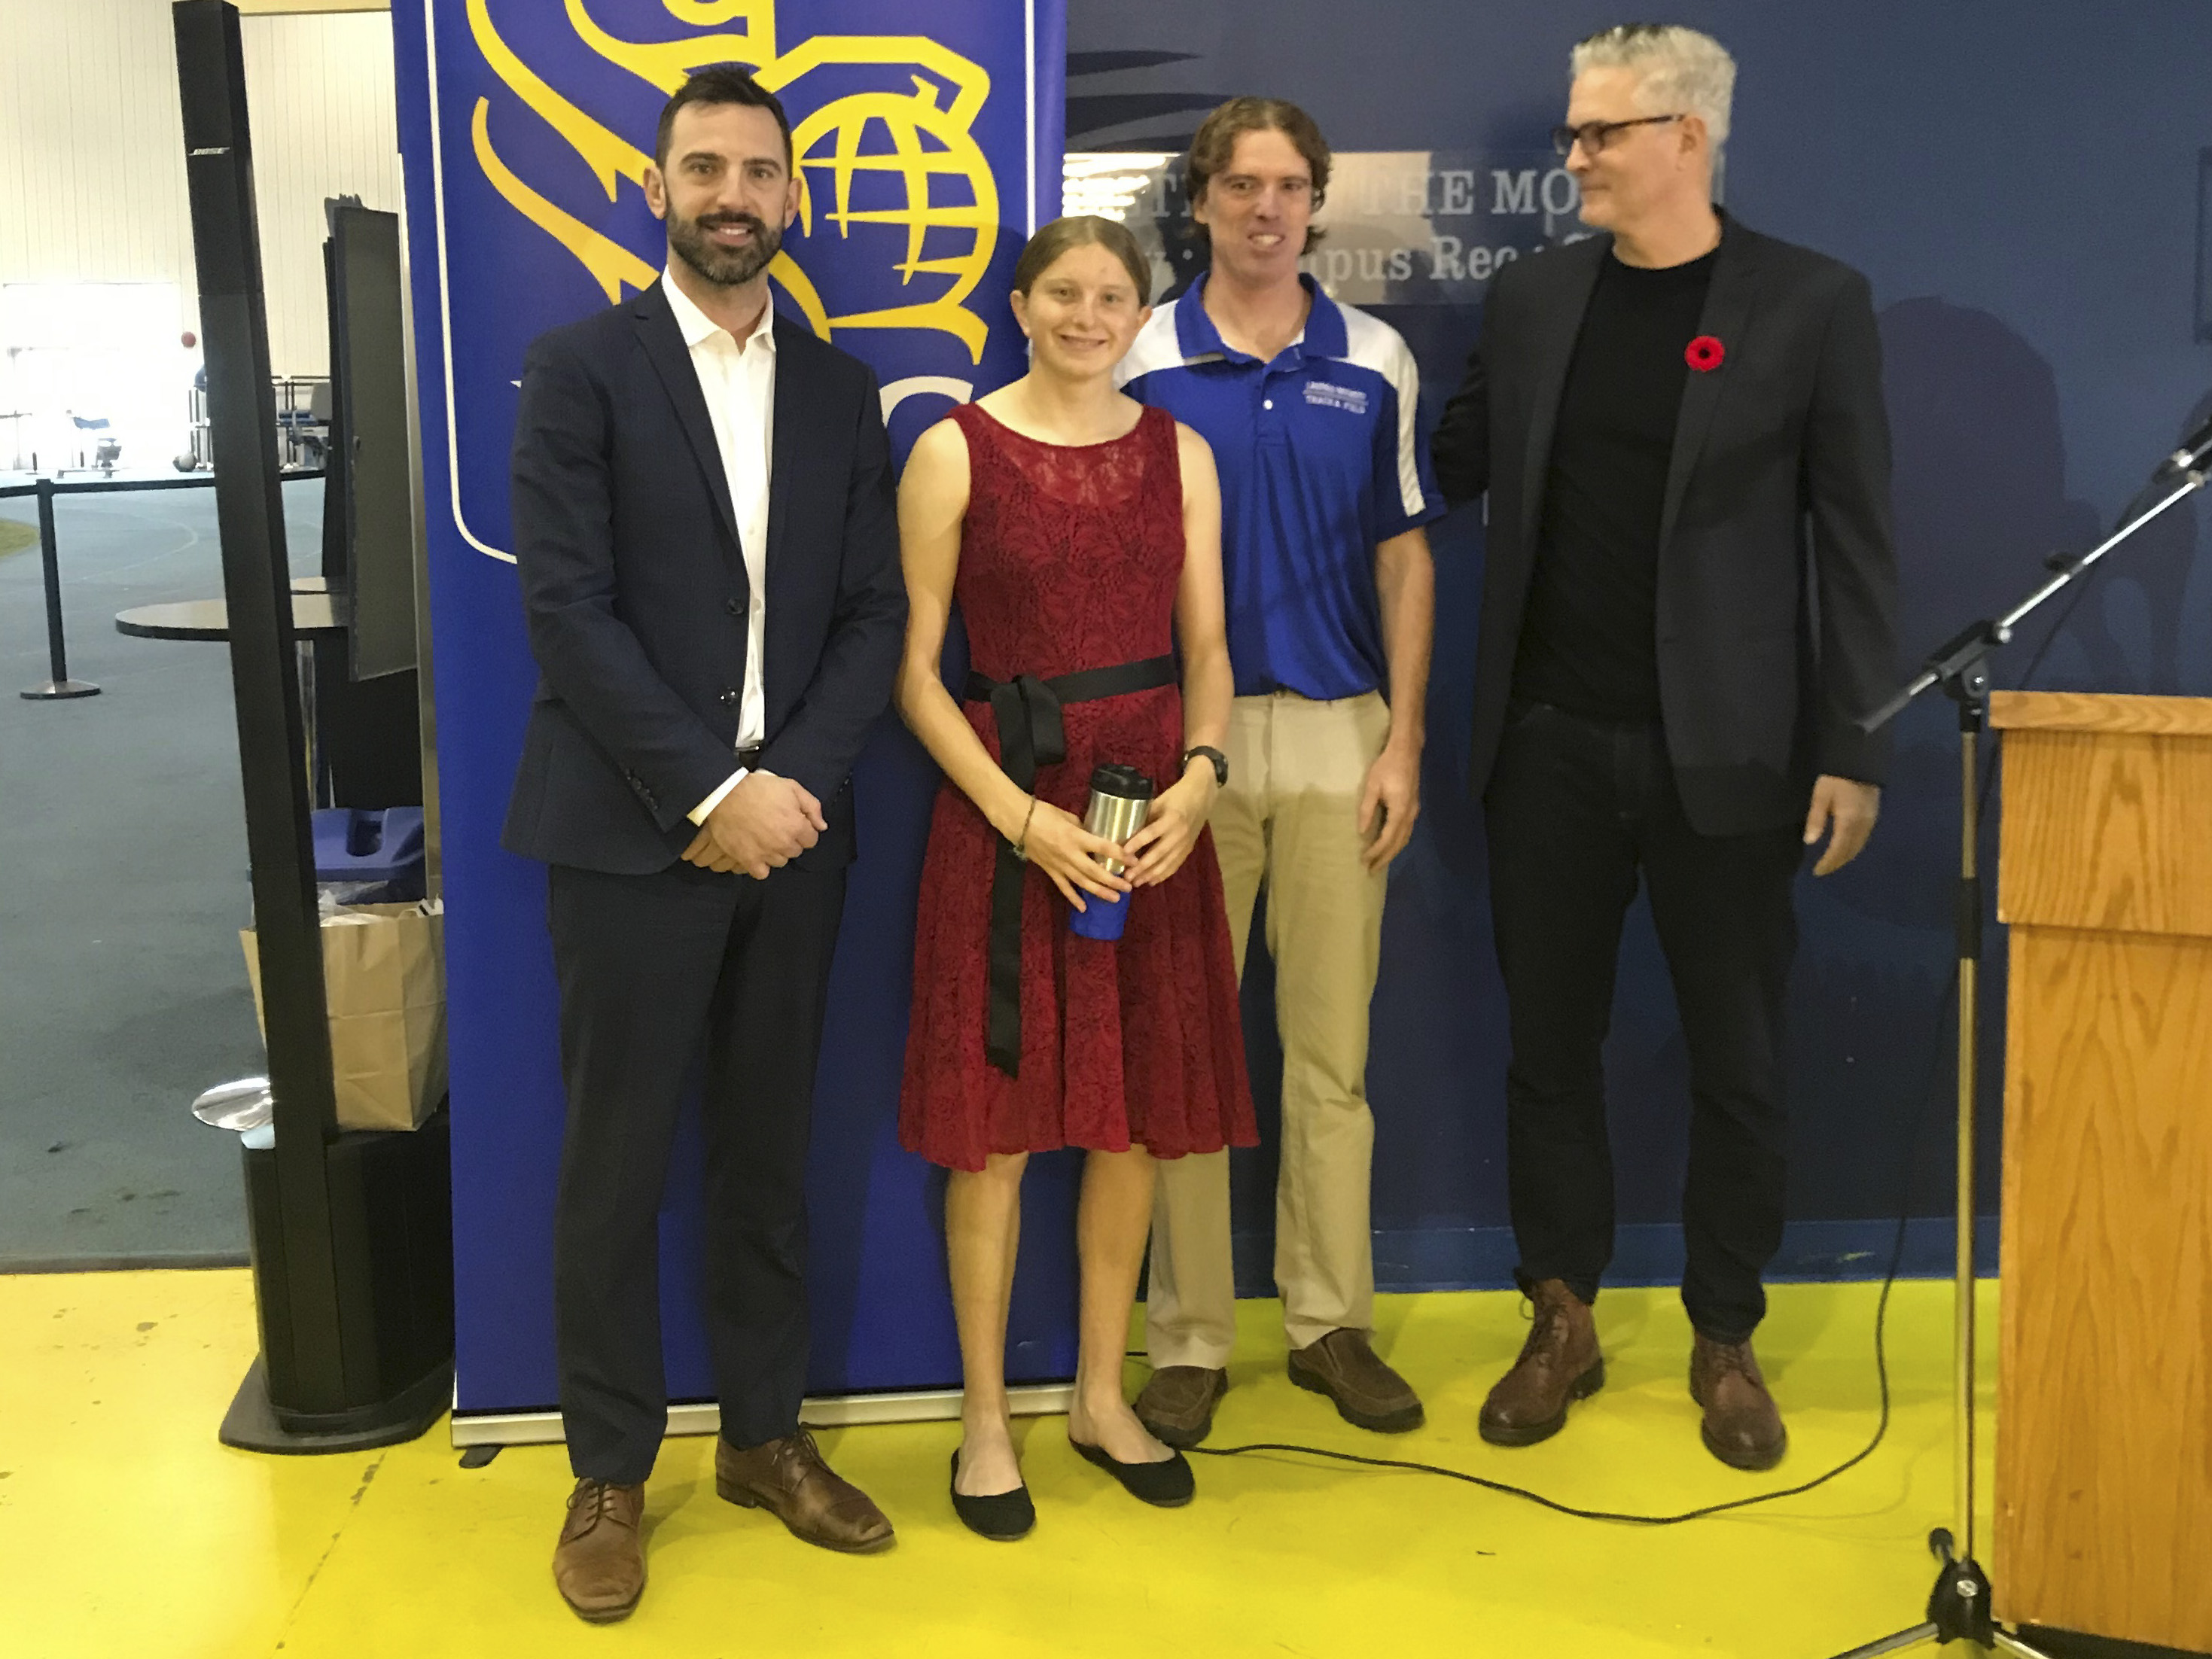 RBC Athlete of the Month - October 2019